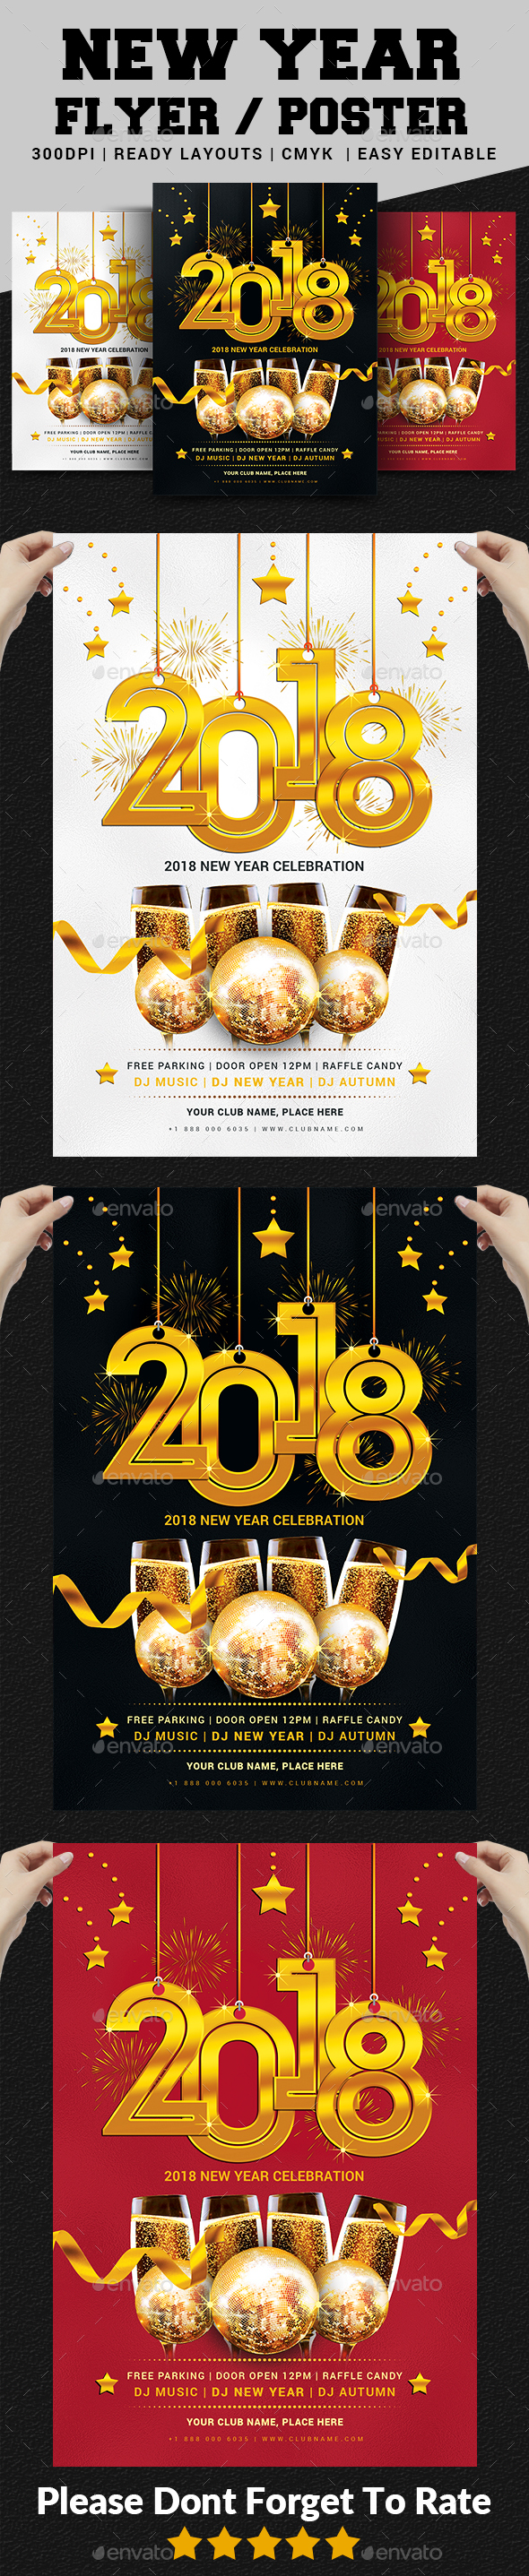 2018 New Year Party Flyer Templates - Events Flyers